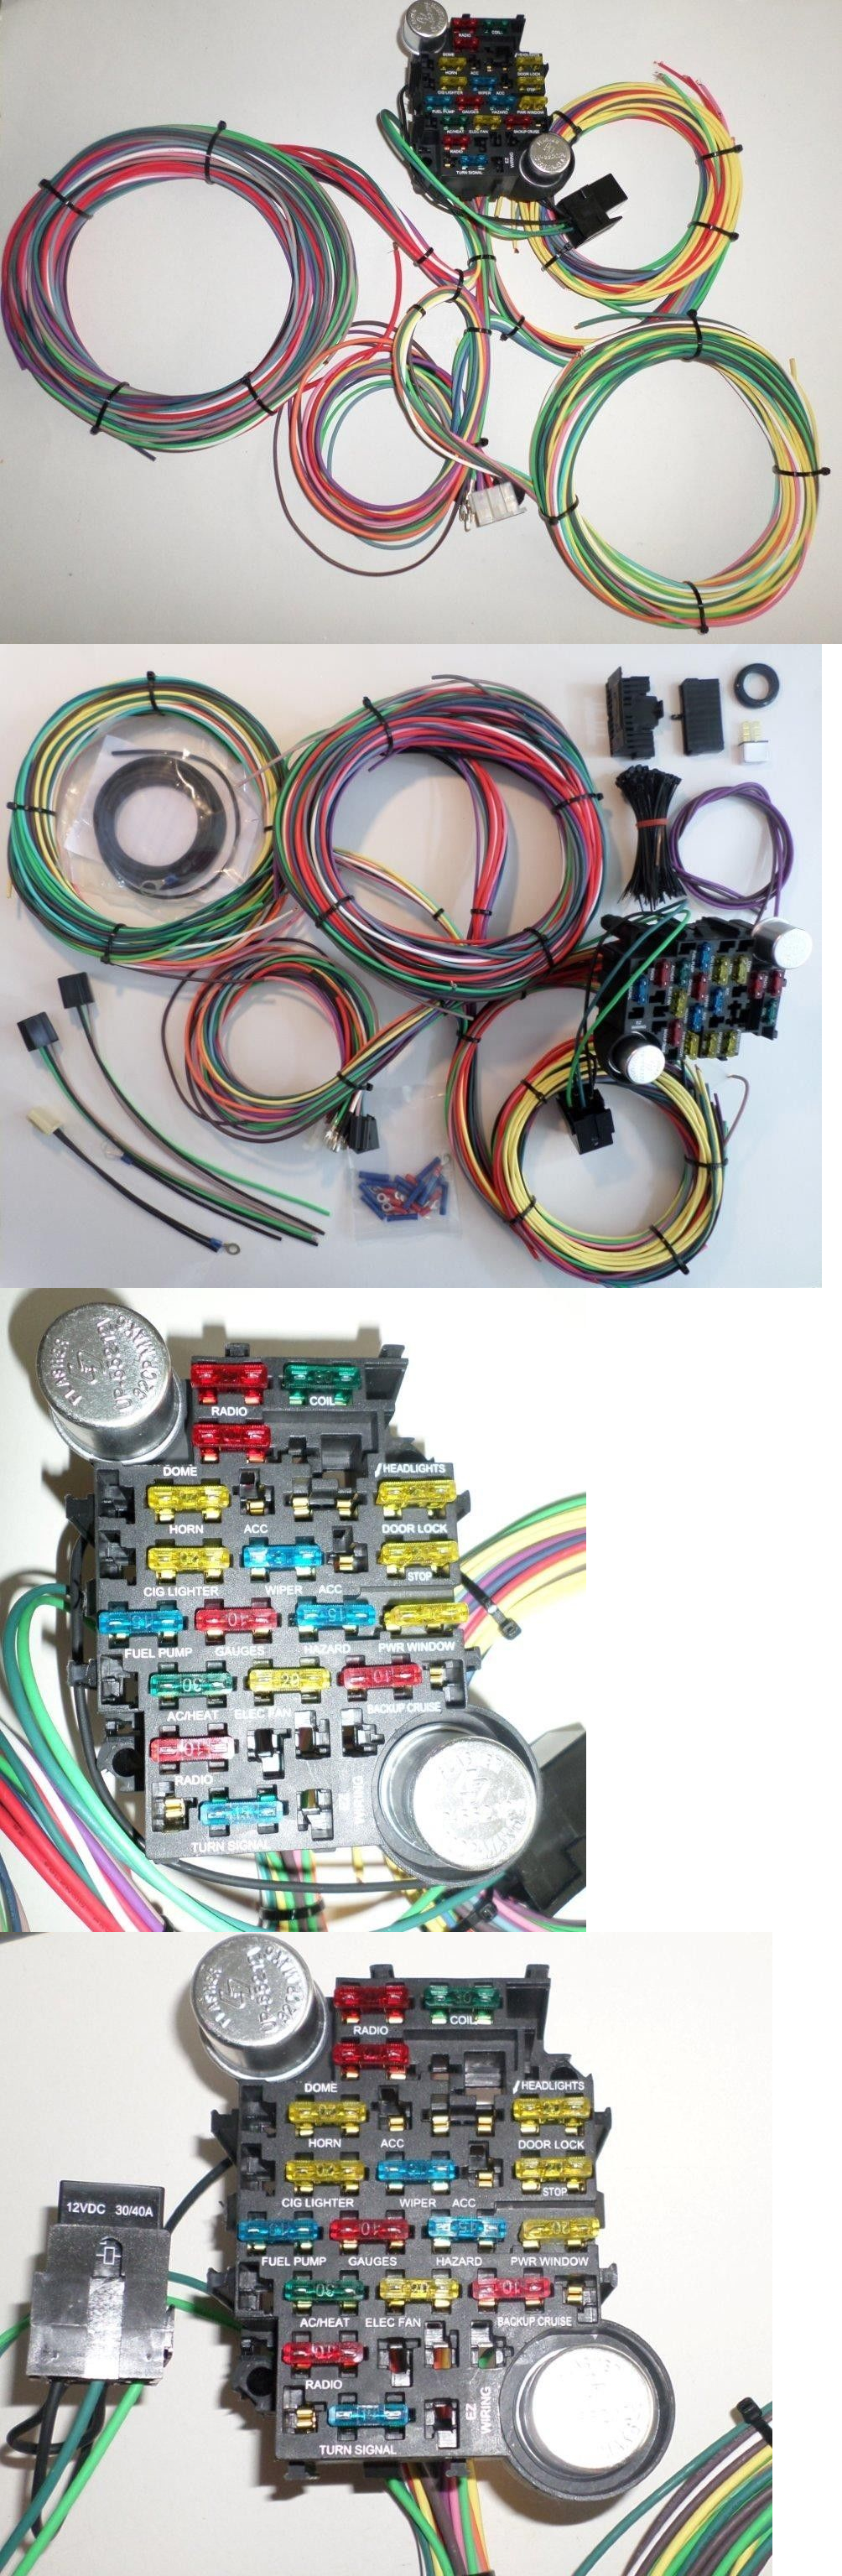 740418d052d65d4b545381b67aadc1a2 wiring 21 circuit harness turn signal circut wiring diagrams ez wiring mini 20 instructions at cos-gaming.co